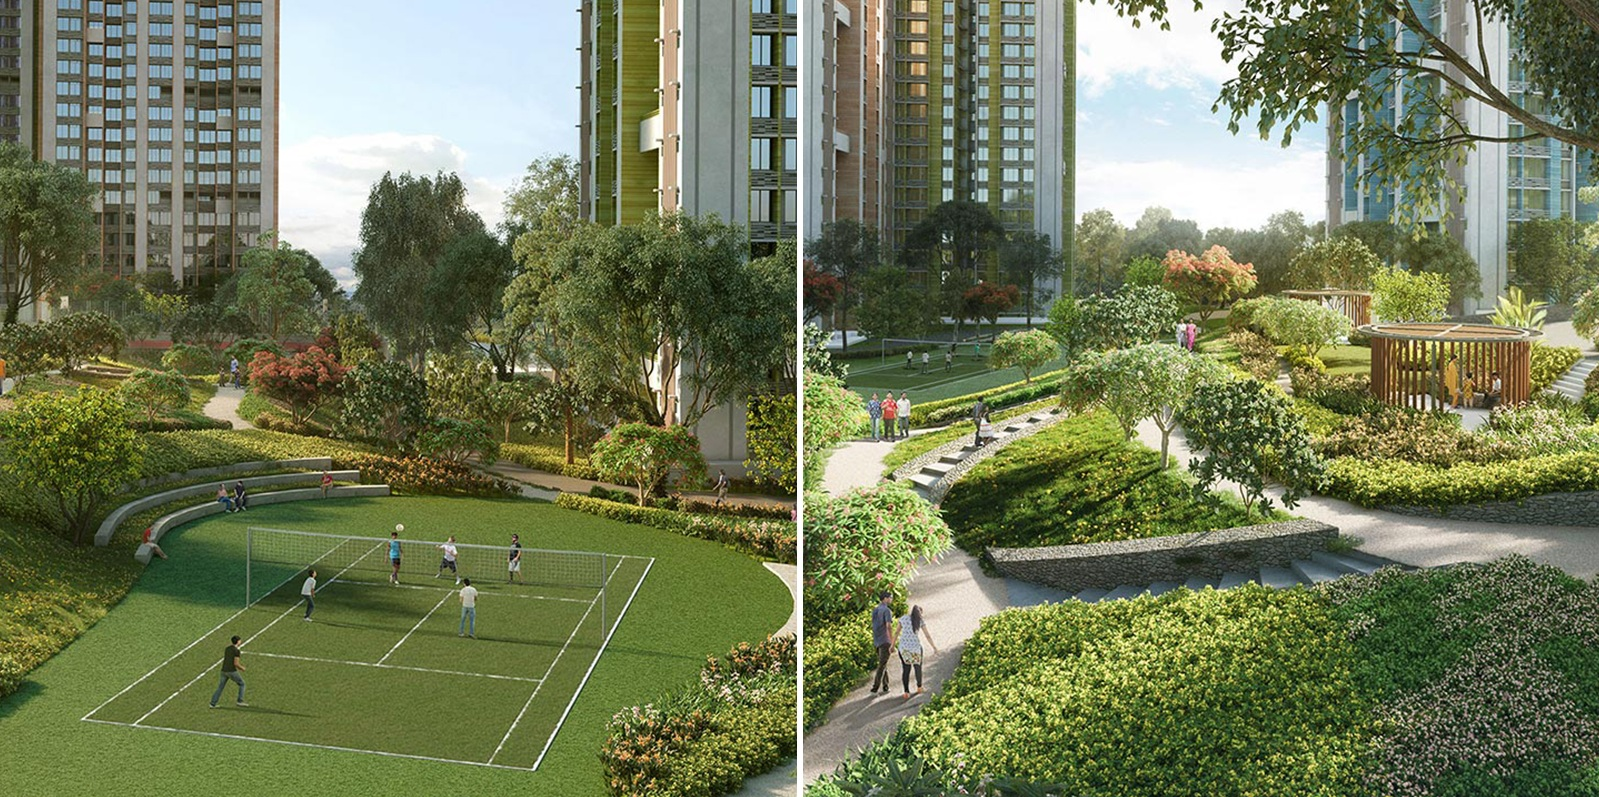 wadhwa wise city south block phase 1 b3 wing c2 amenities features6